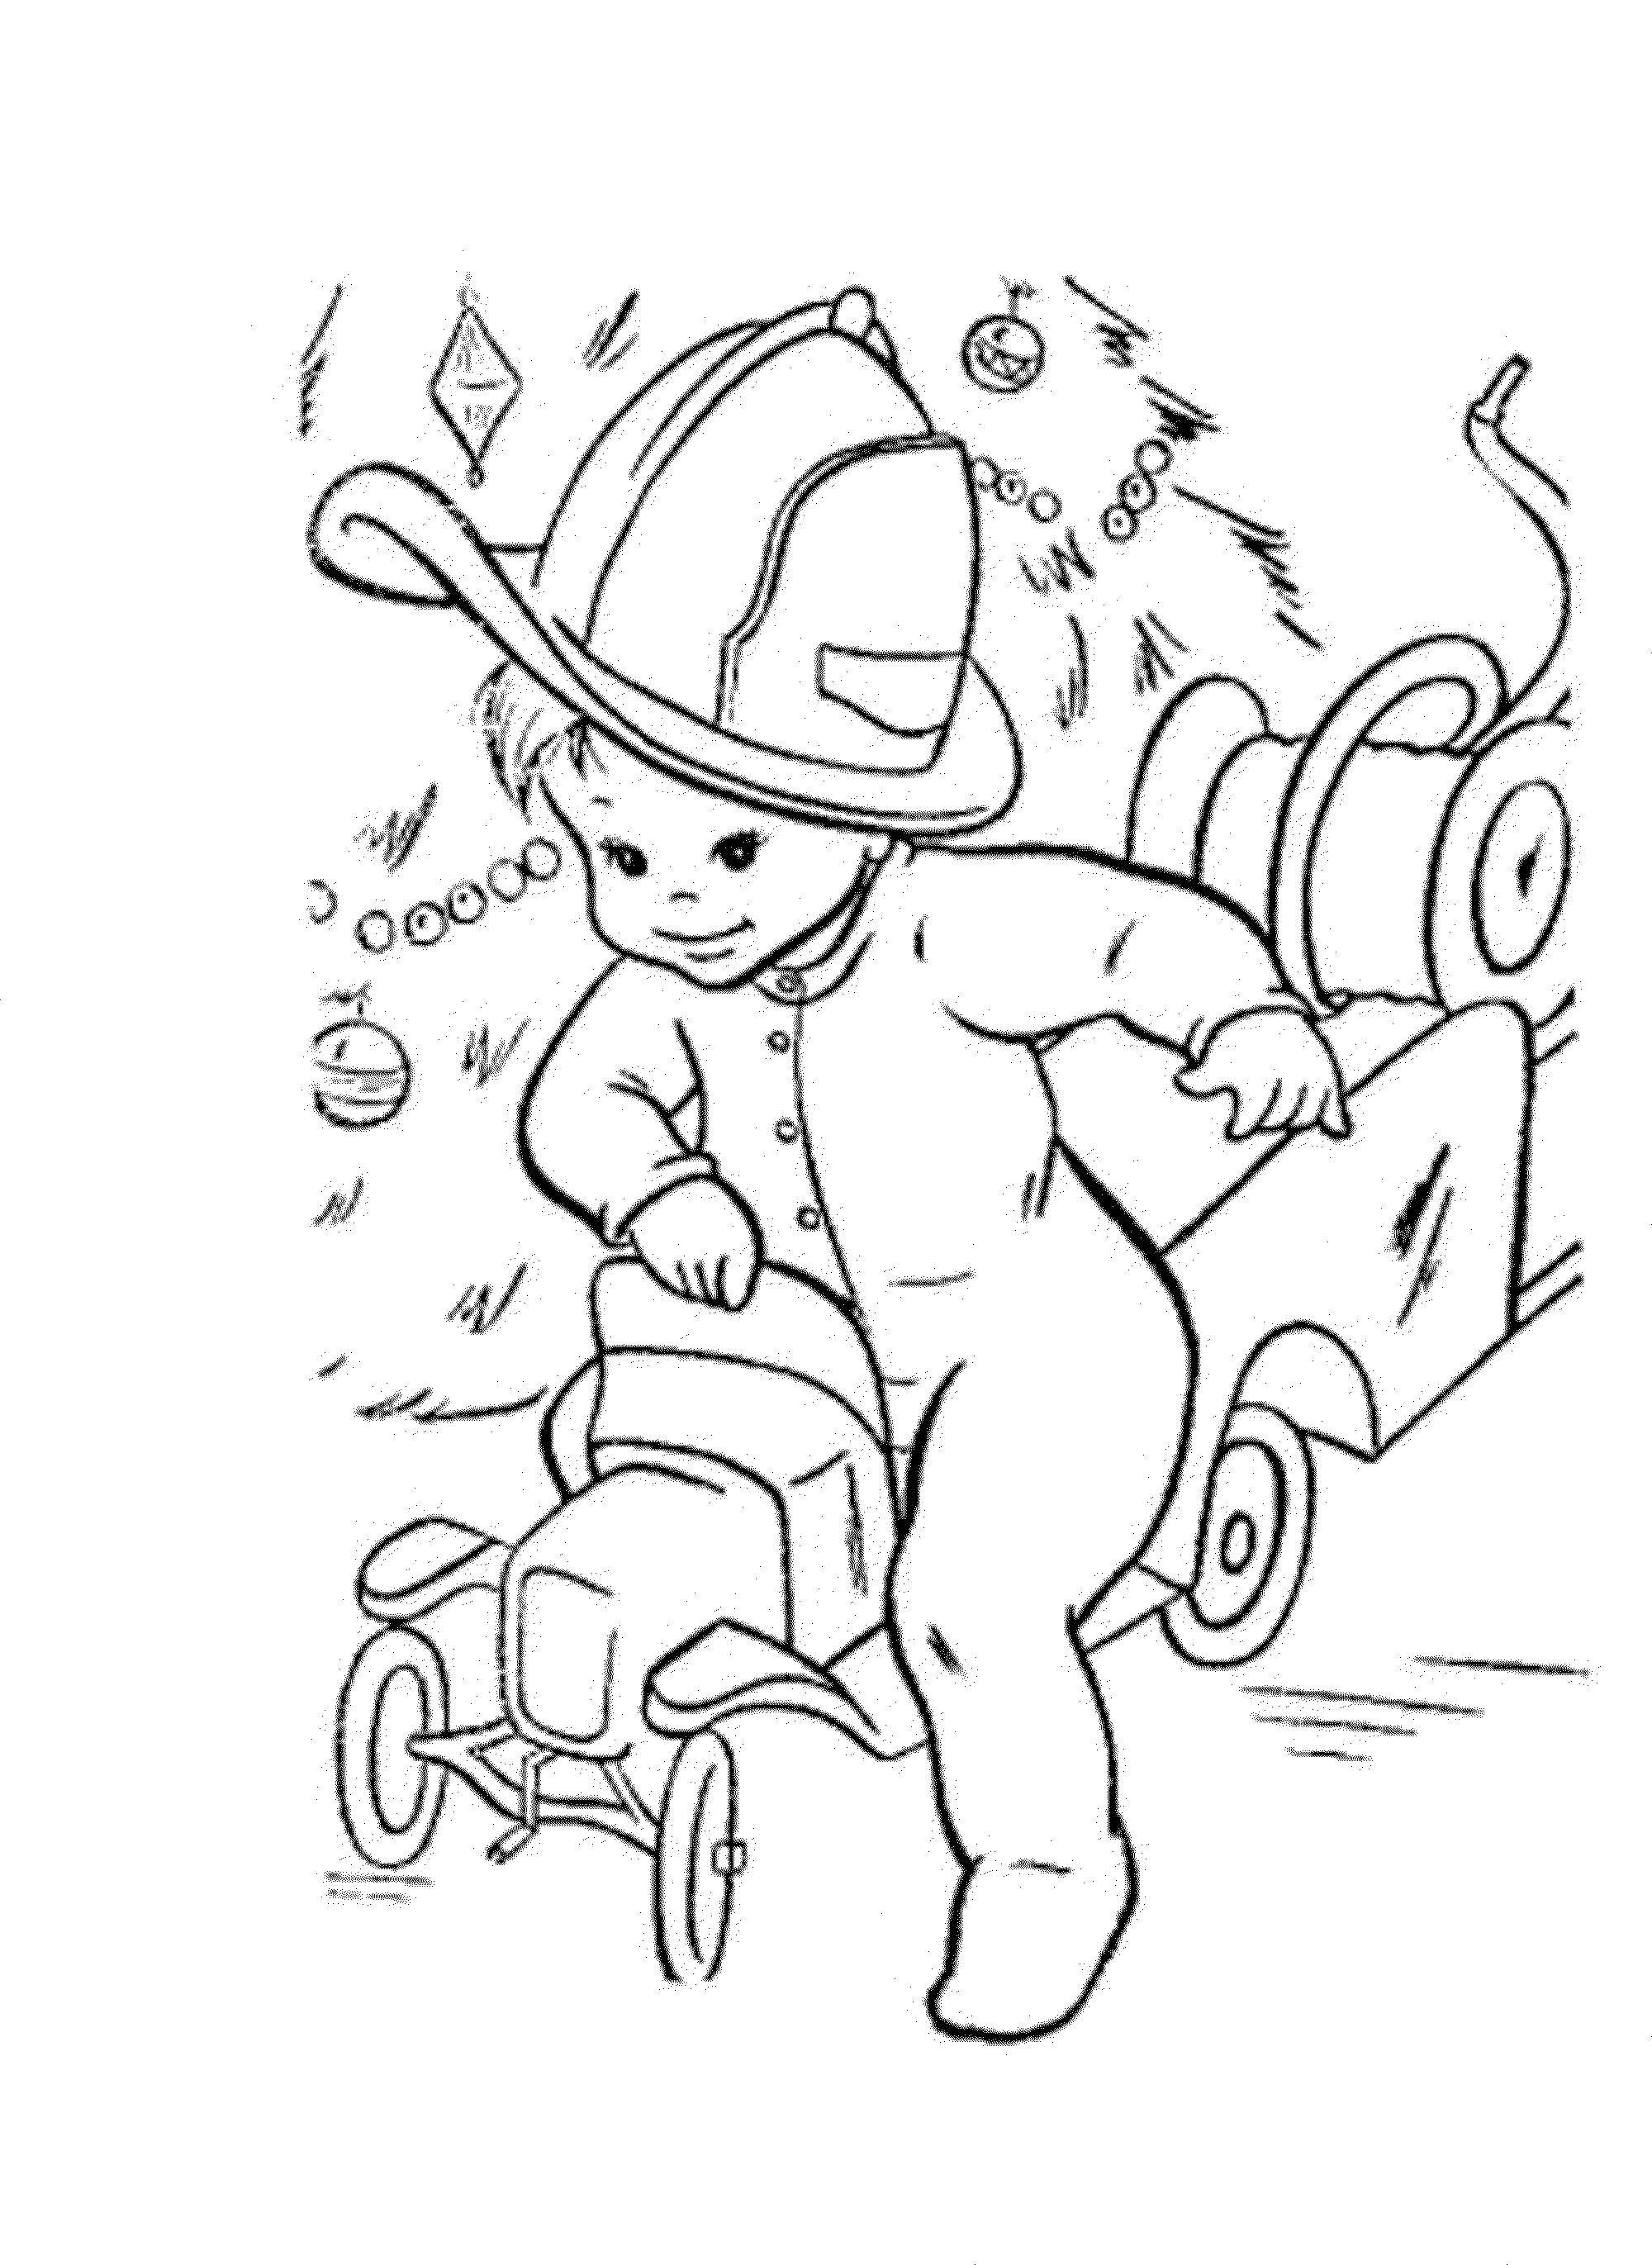 Coloring sheet People Download animals, kitten, cat, nature.  Print ,Cats and kittens,